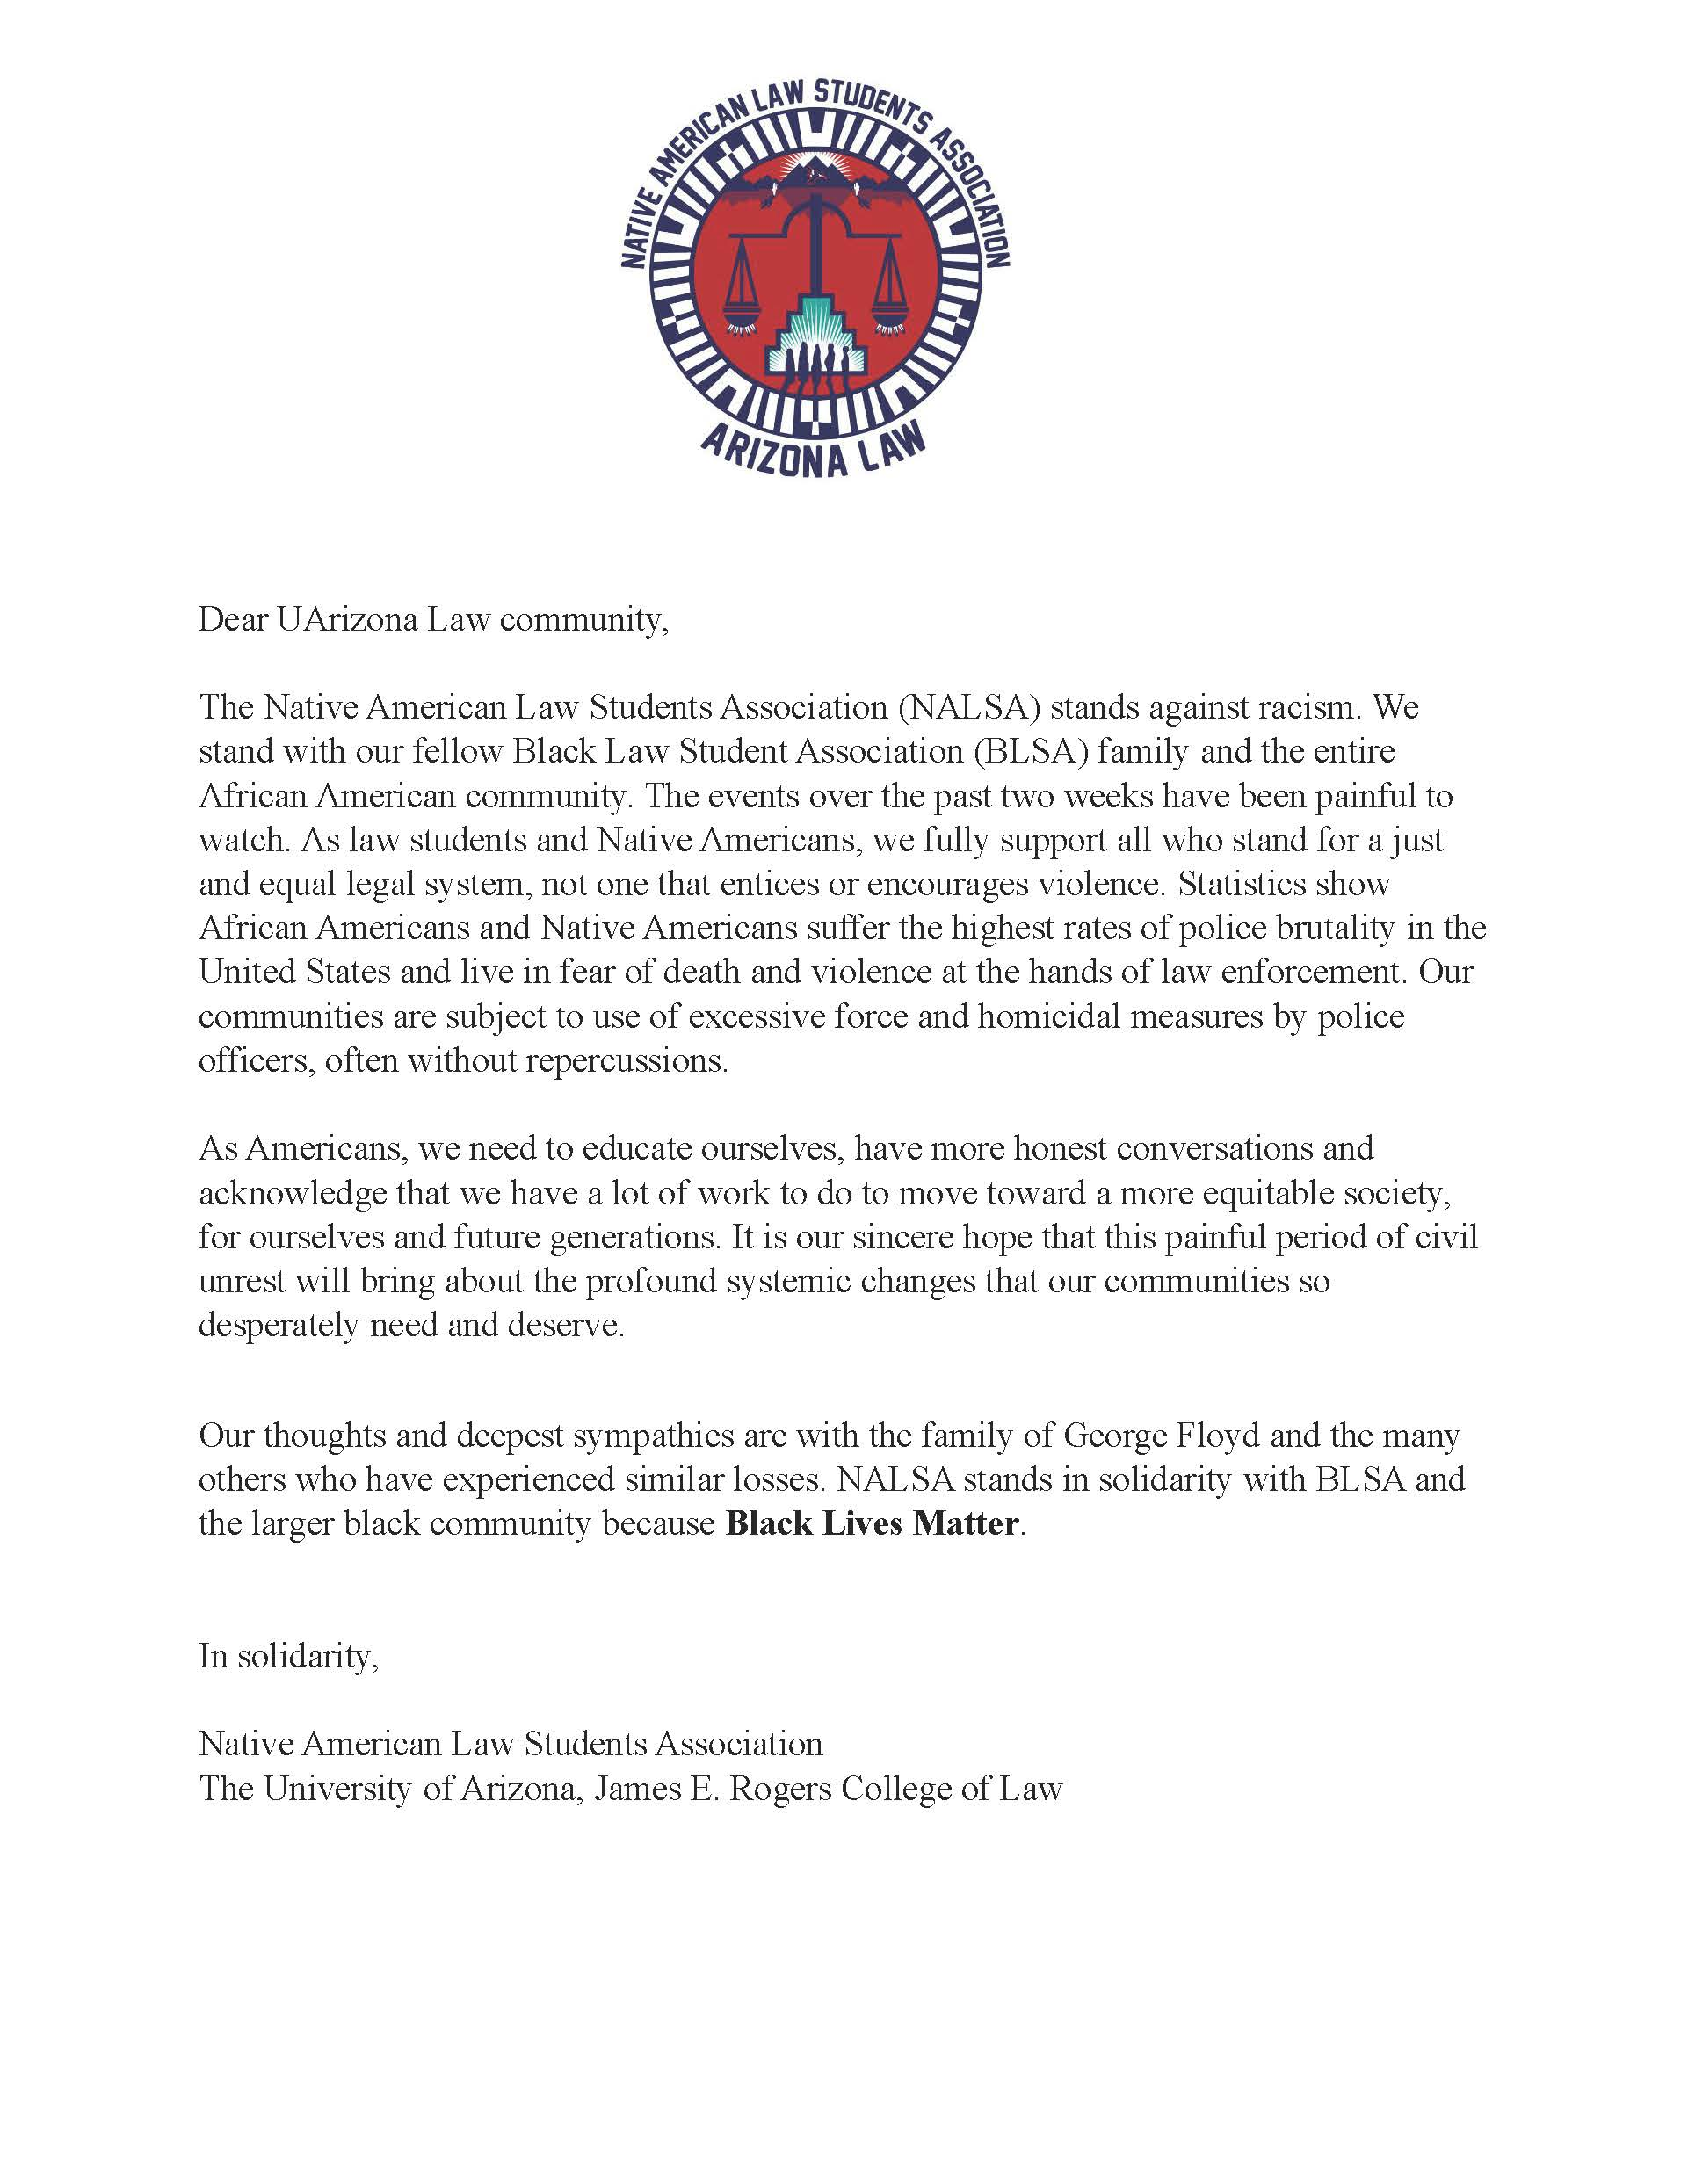 NALSA Solidarity Statement